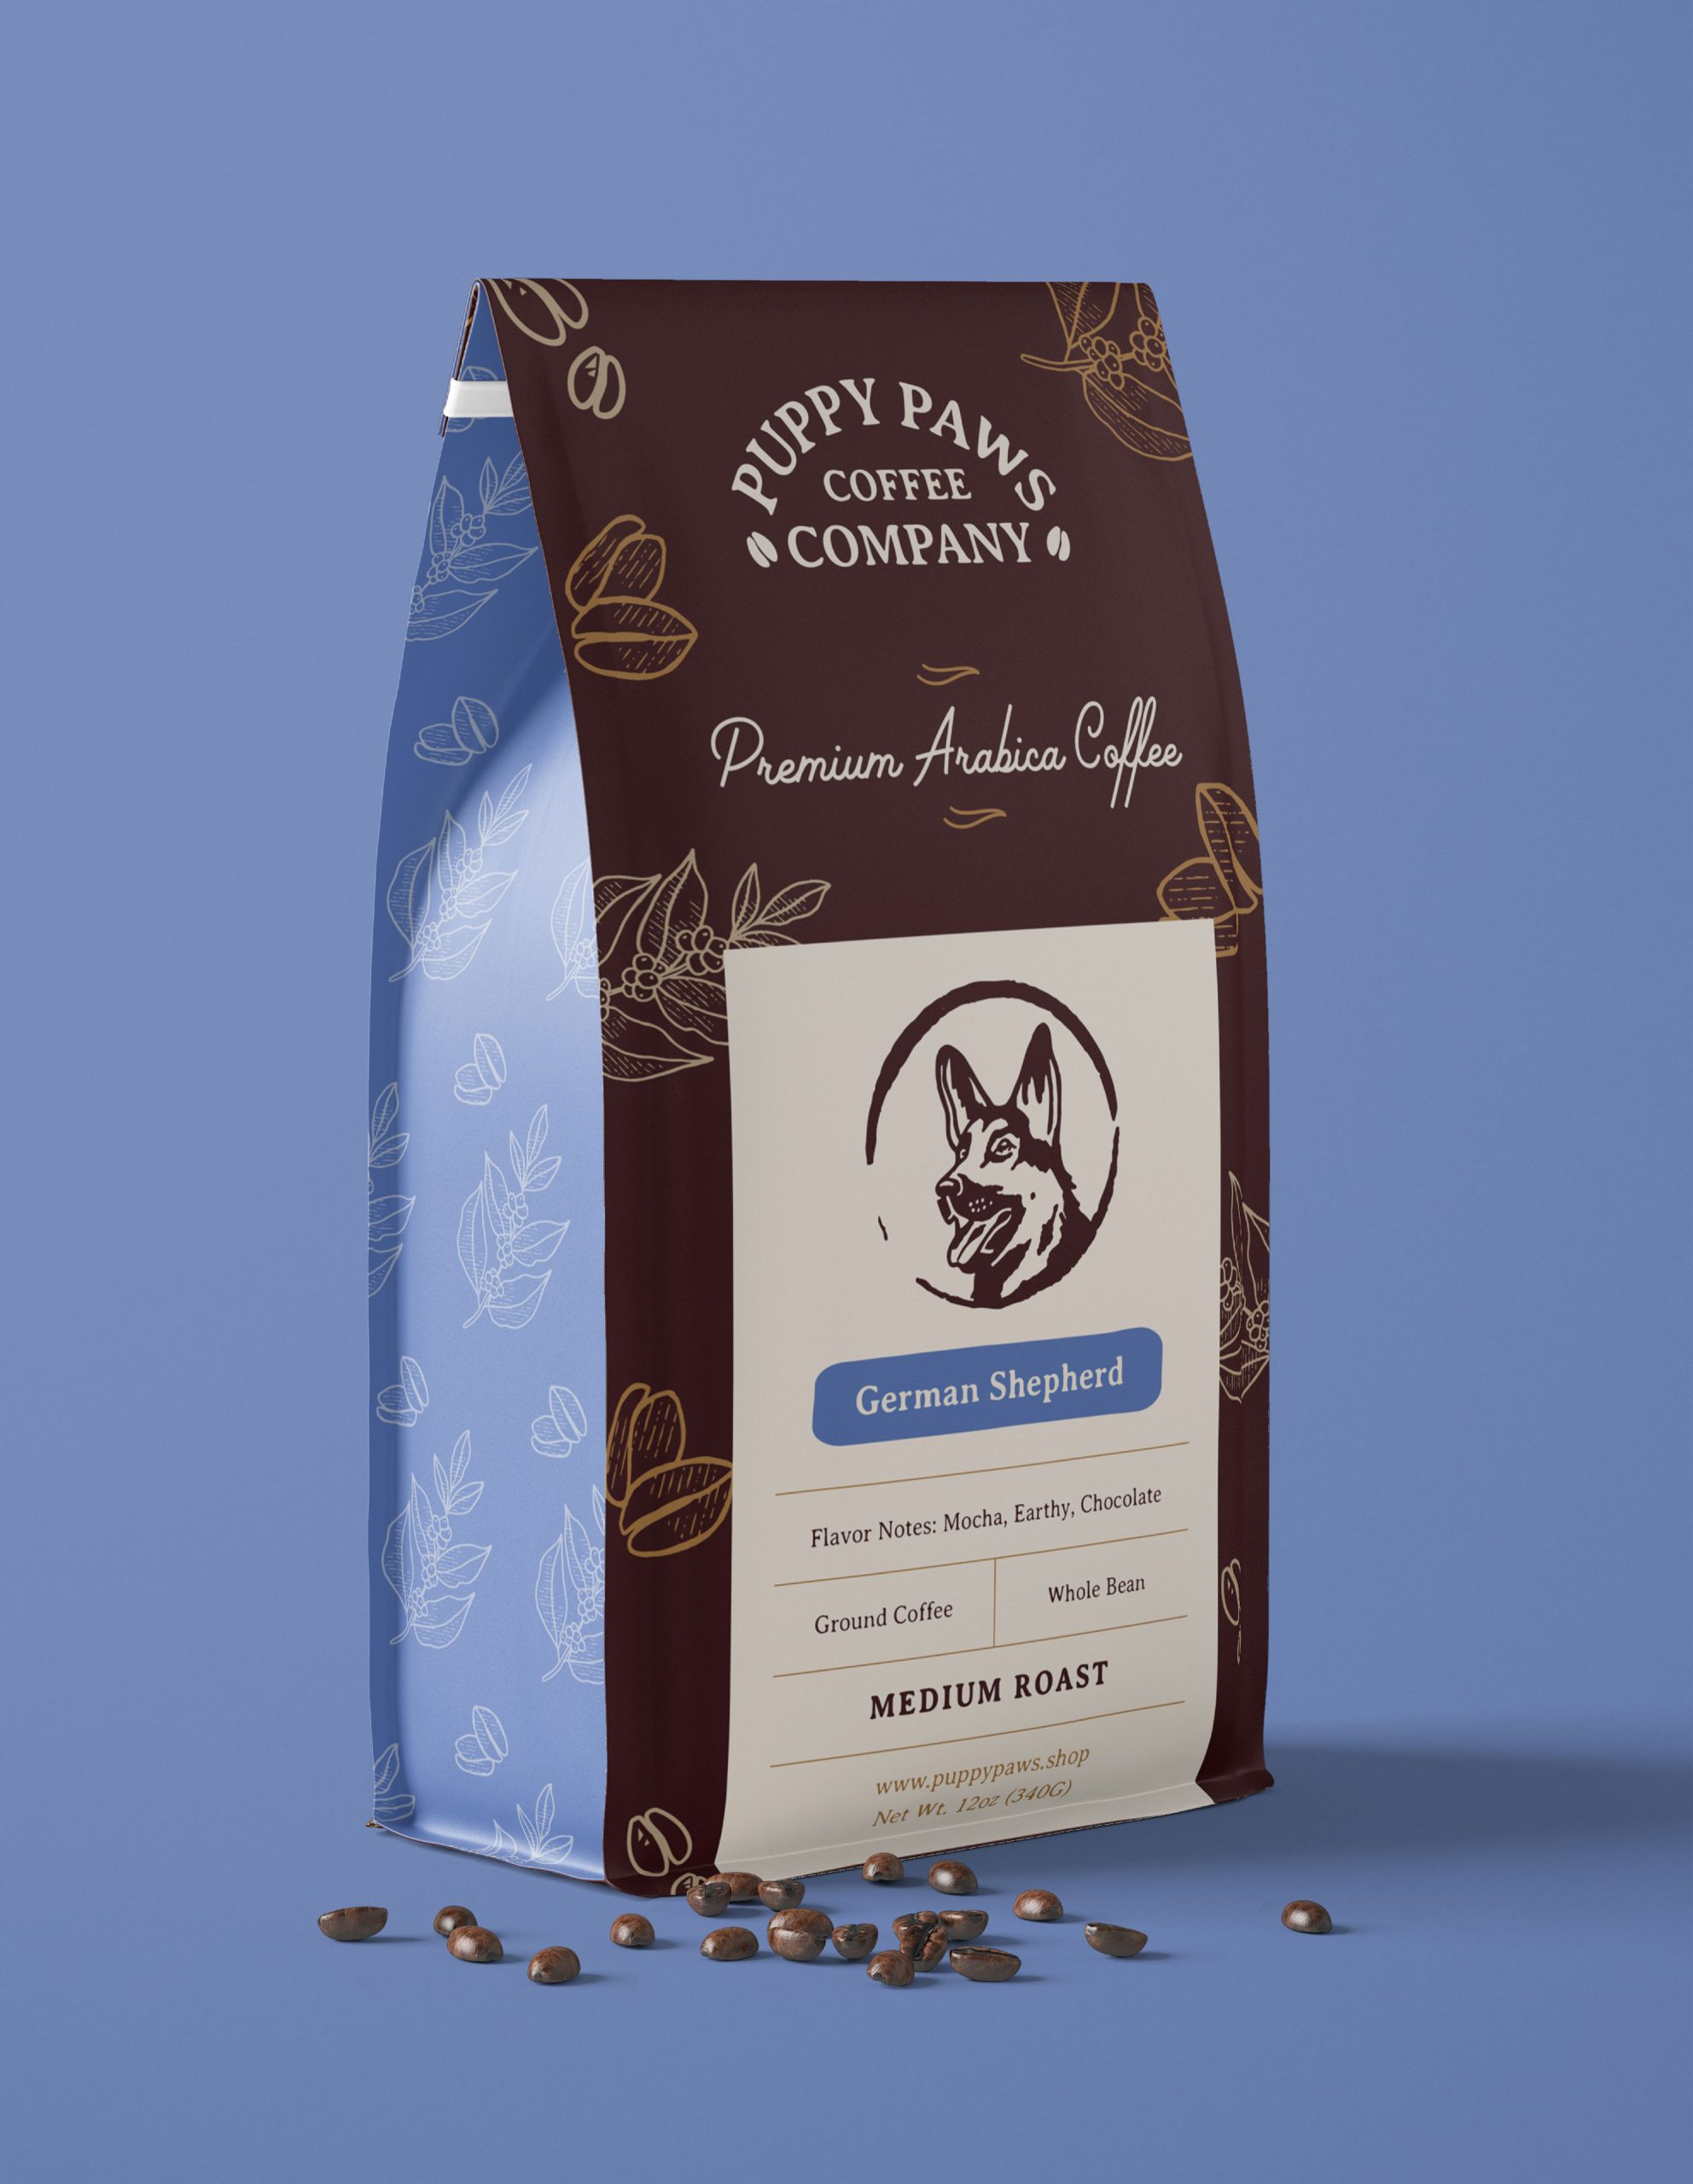 brown coffee bag with dog illustration label for Puppy Paws Coffee Company